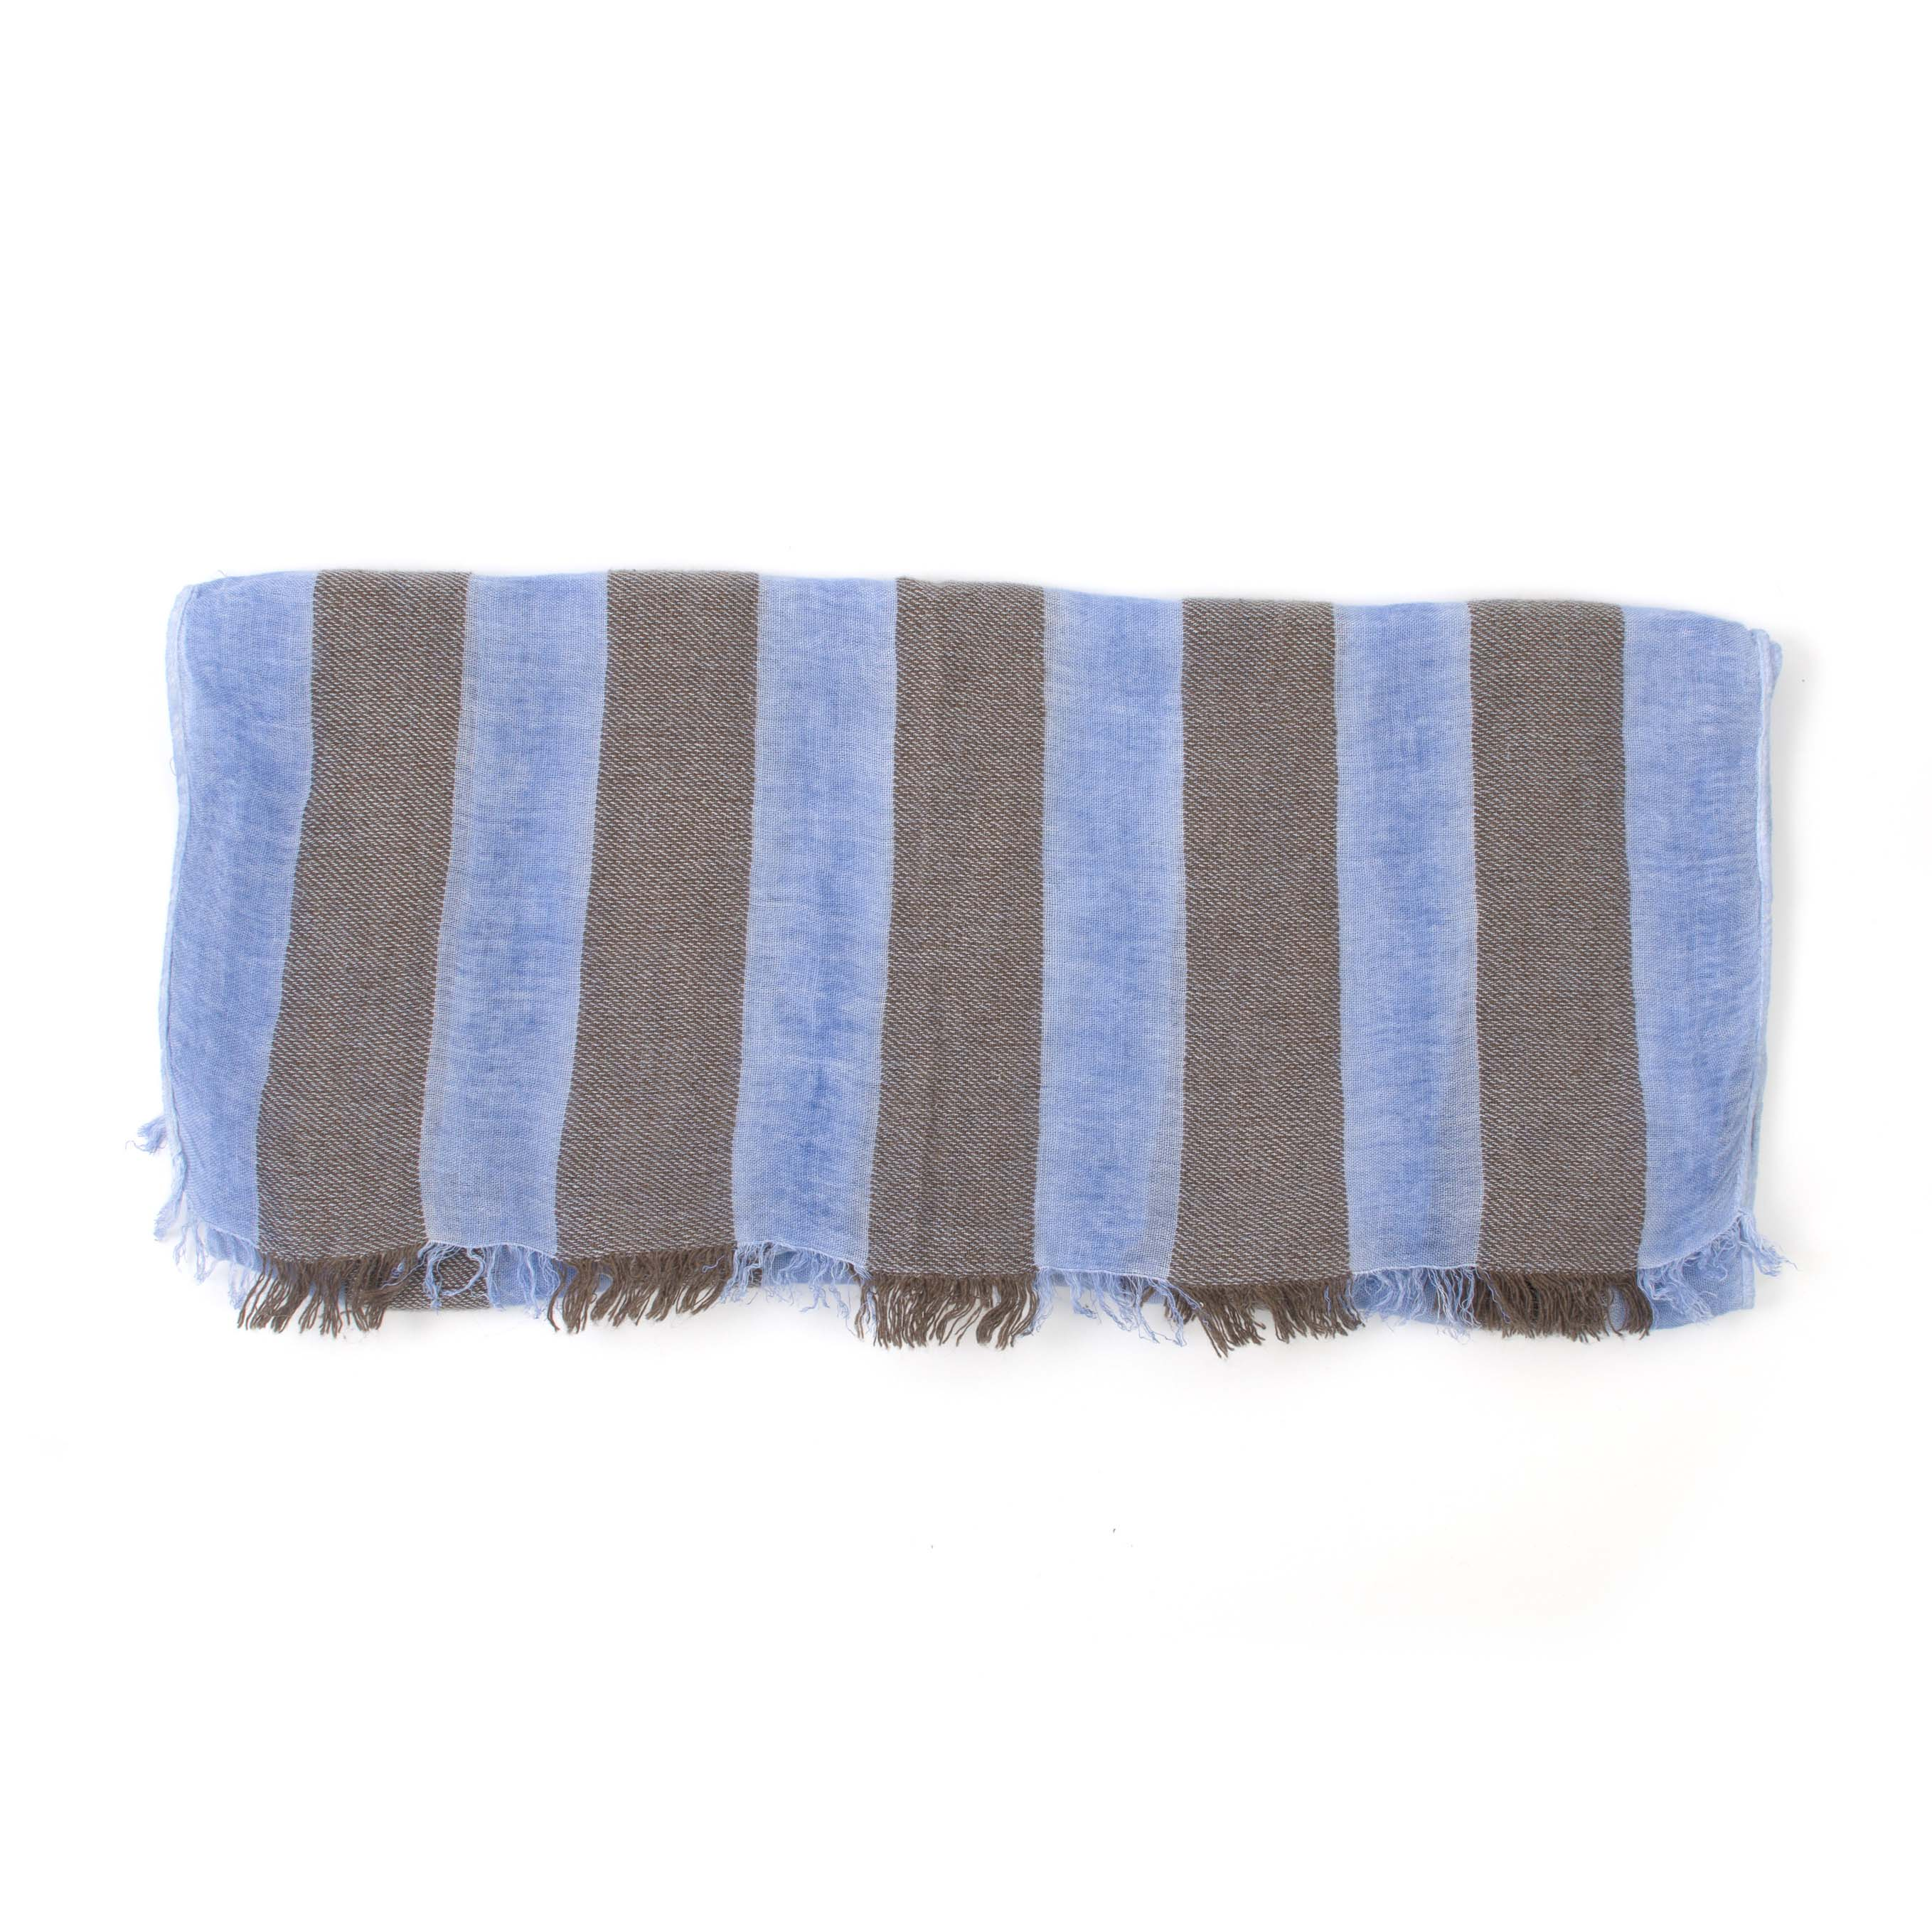 Royal with brown striped scarf, viscose/wool blend